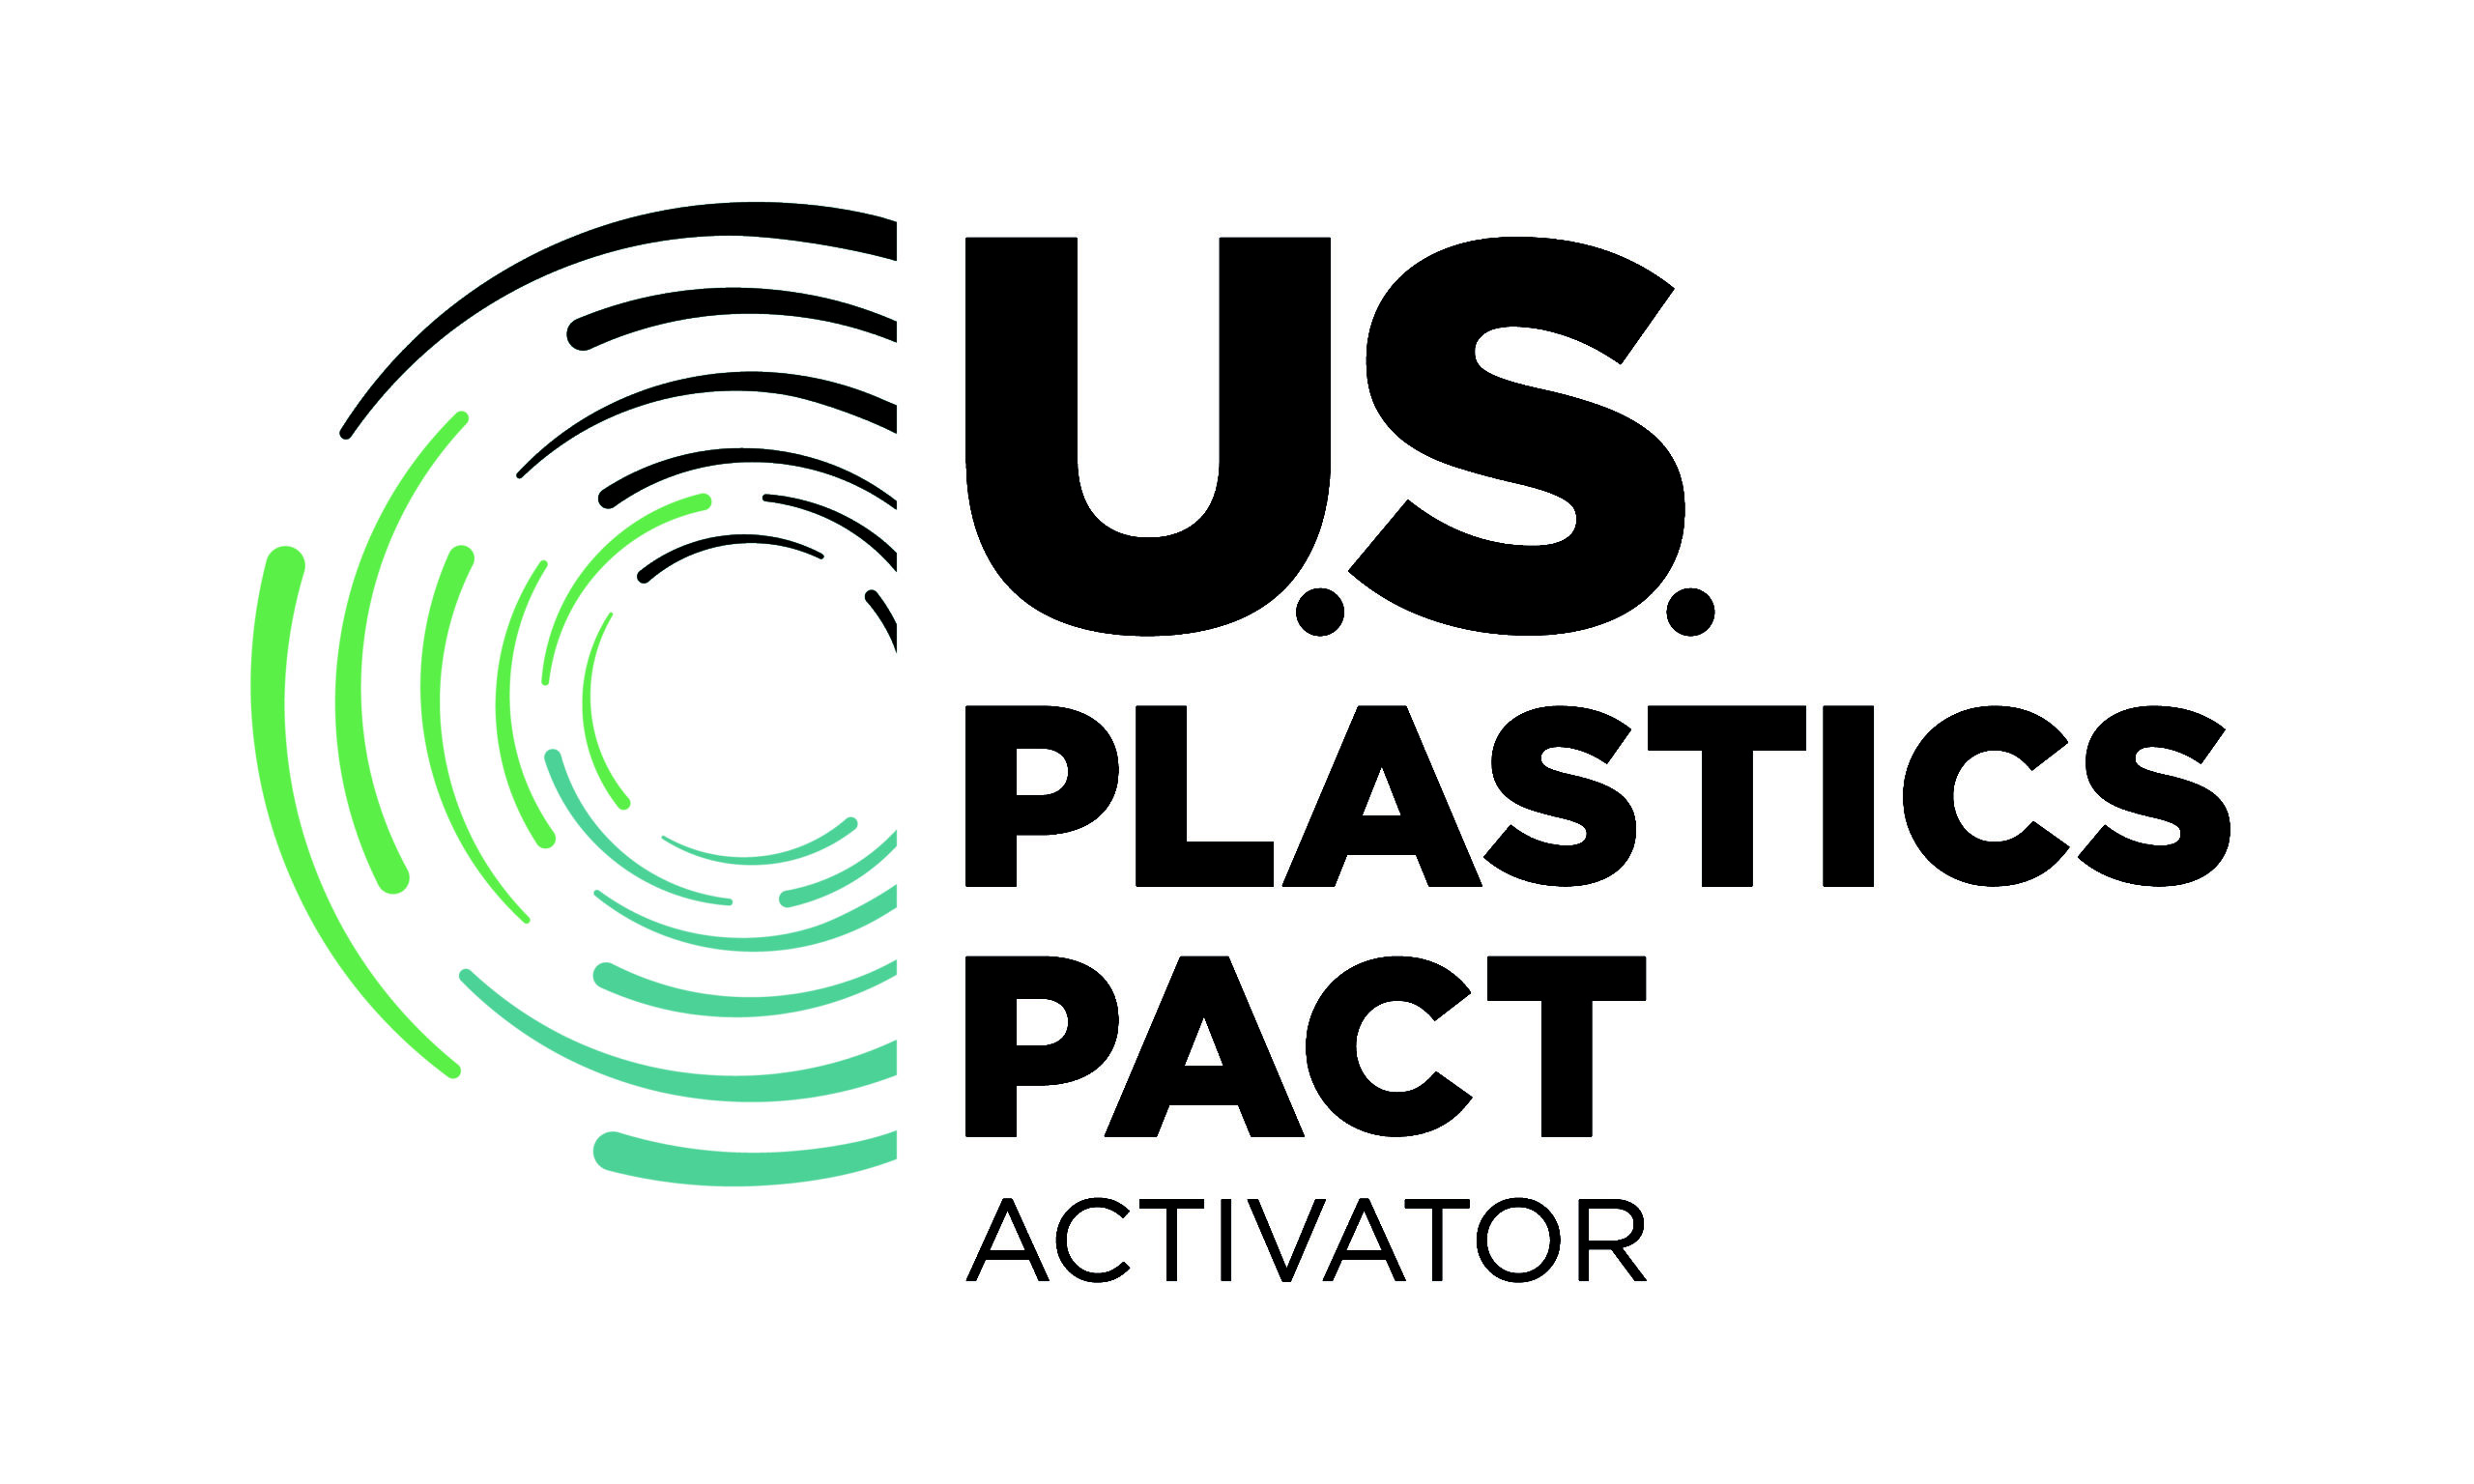 HI-CONE WORLDWIDE JOINS U.S. PLASTICS PACT, COMMITTING TO MEET AMBITIOUS CIRCULAR ECONOMY GOALS BY 2025